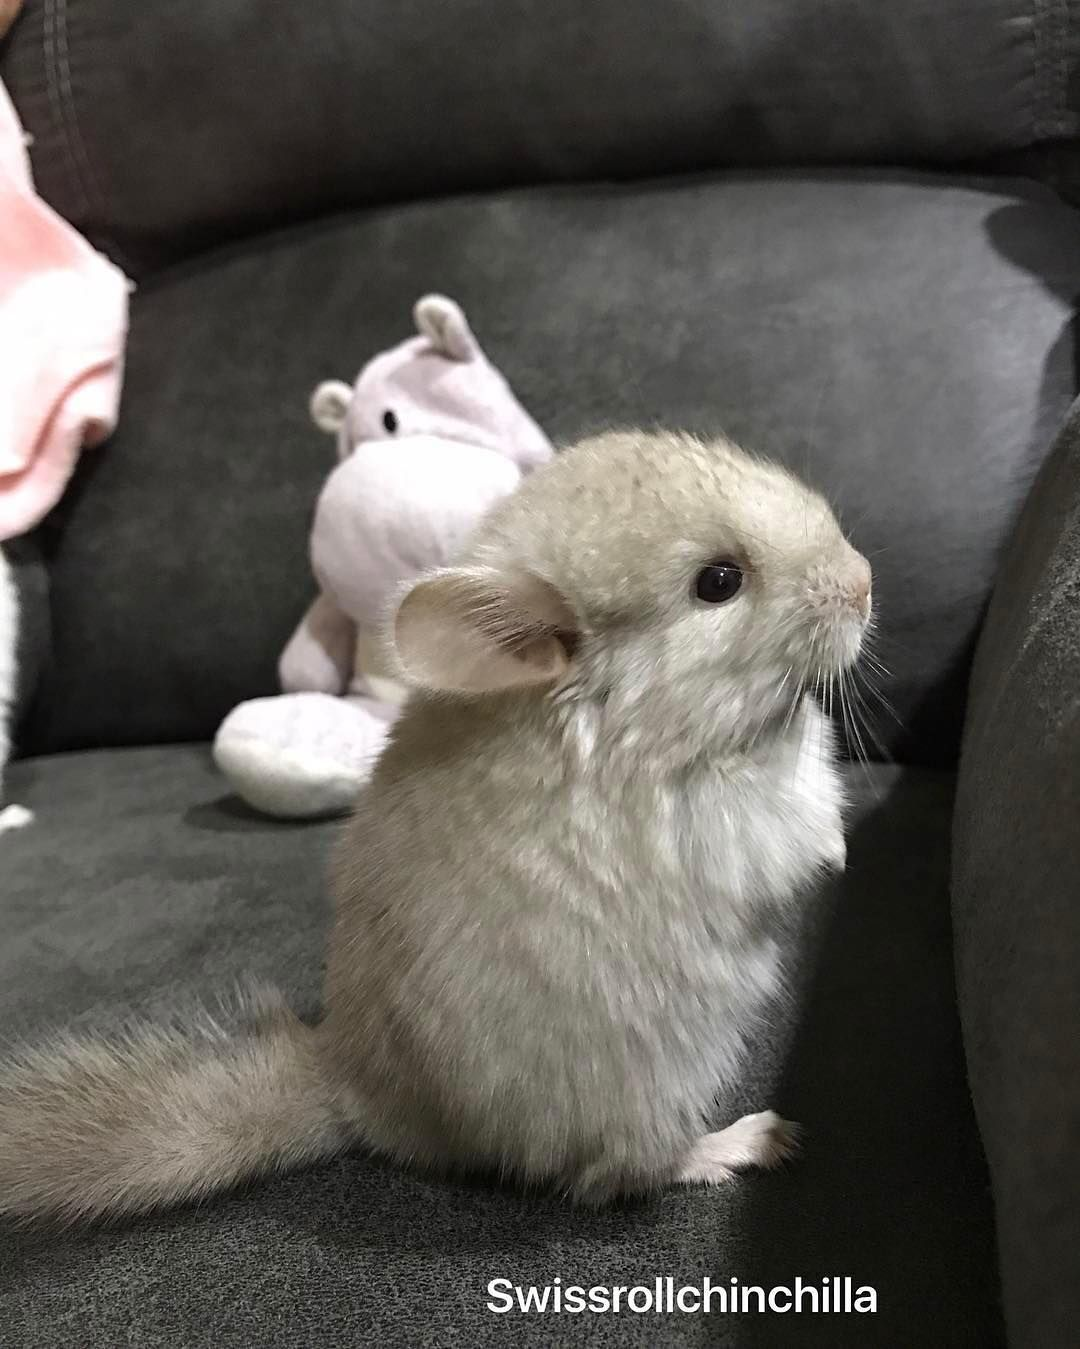 29 Pictures That Prove Chinchillas Are The Cutest Animals On The